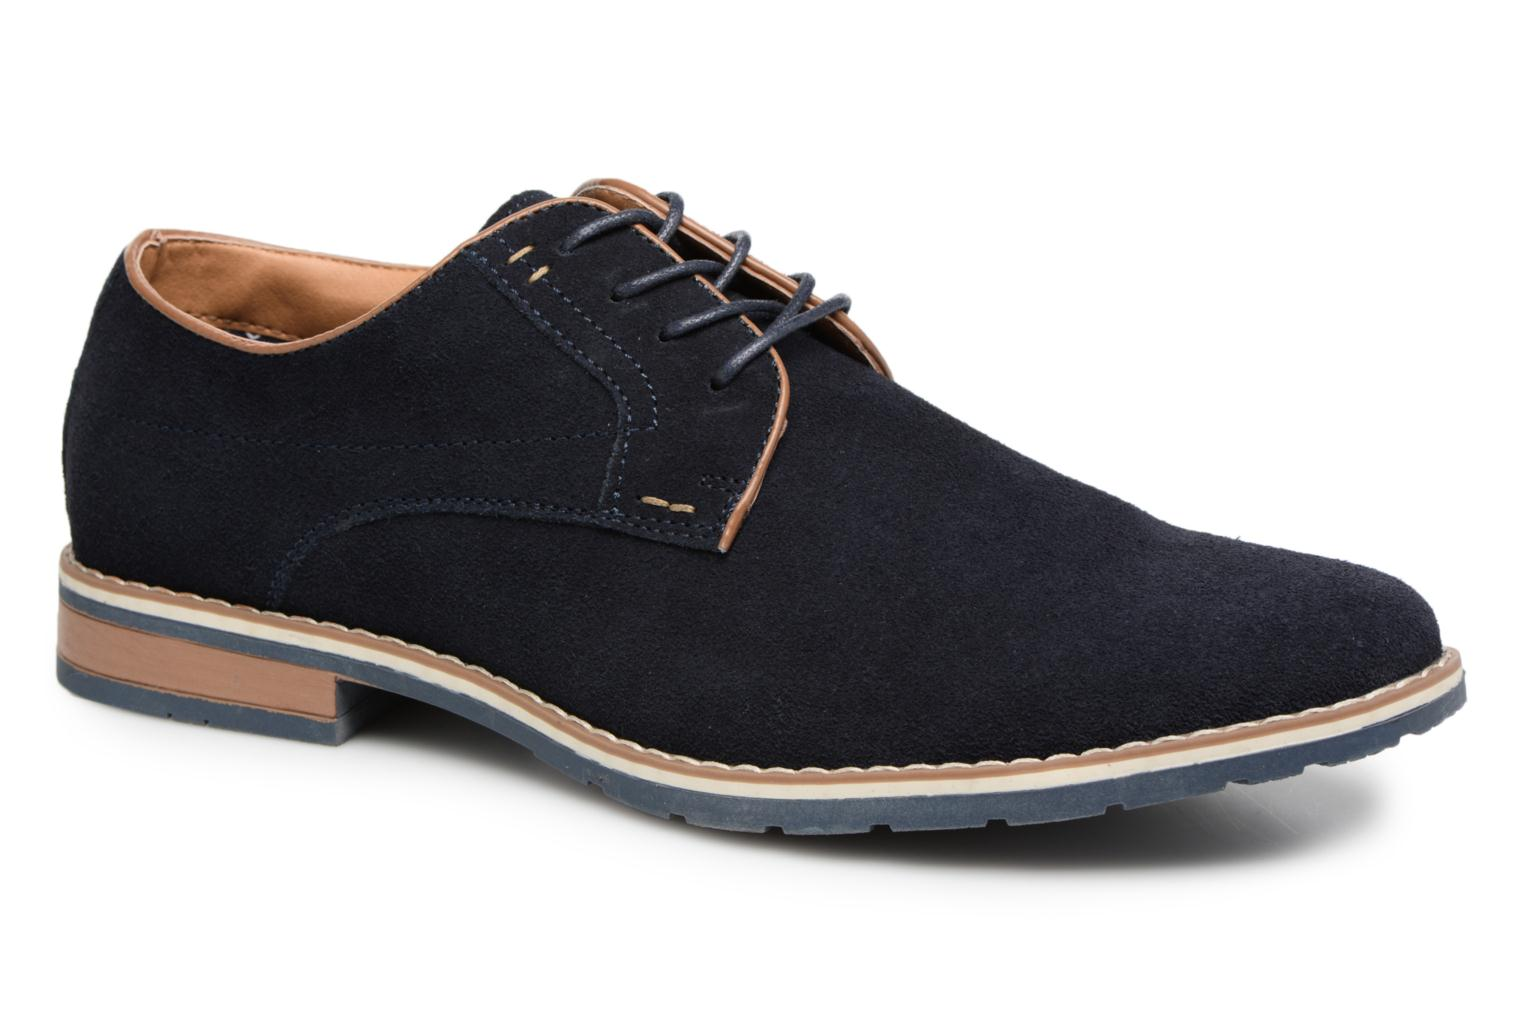 Marques Chaussure homme I Love Shoes homme KERENS Leather Navy